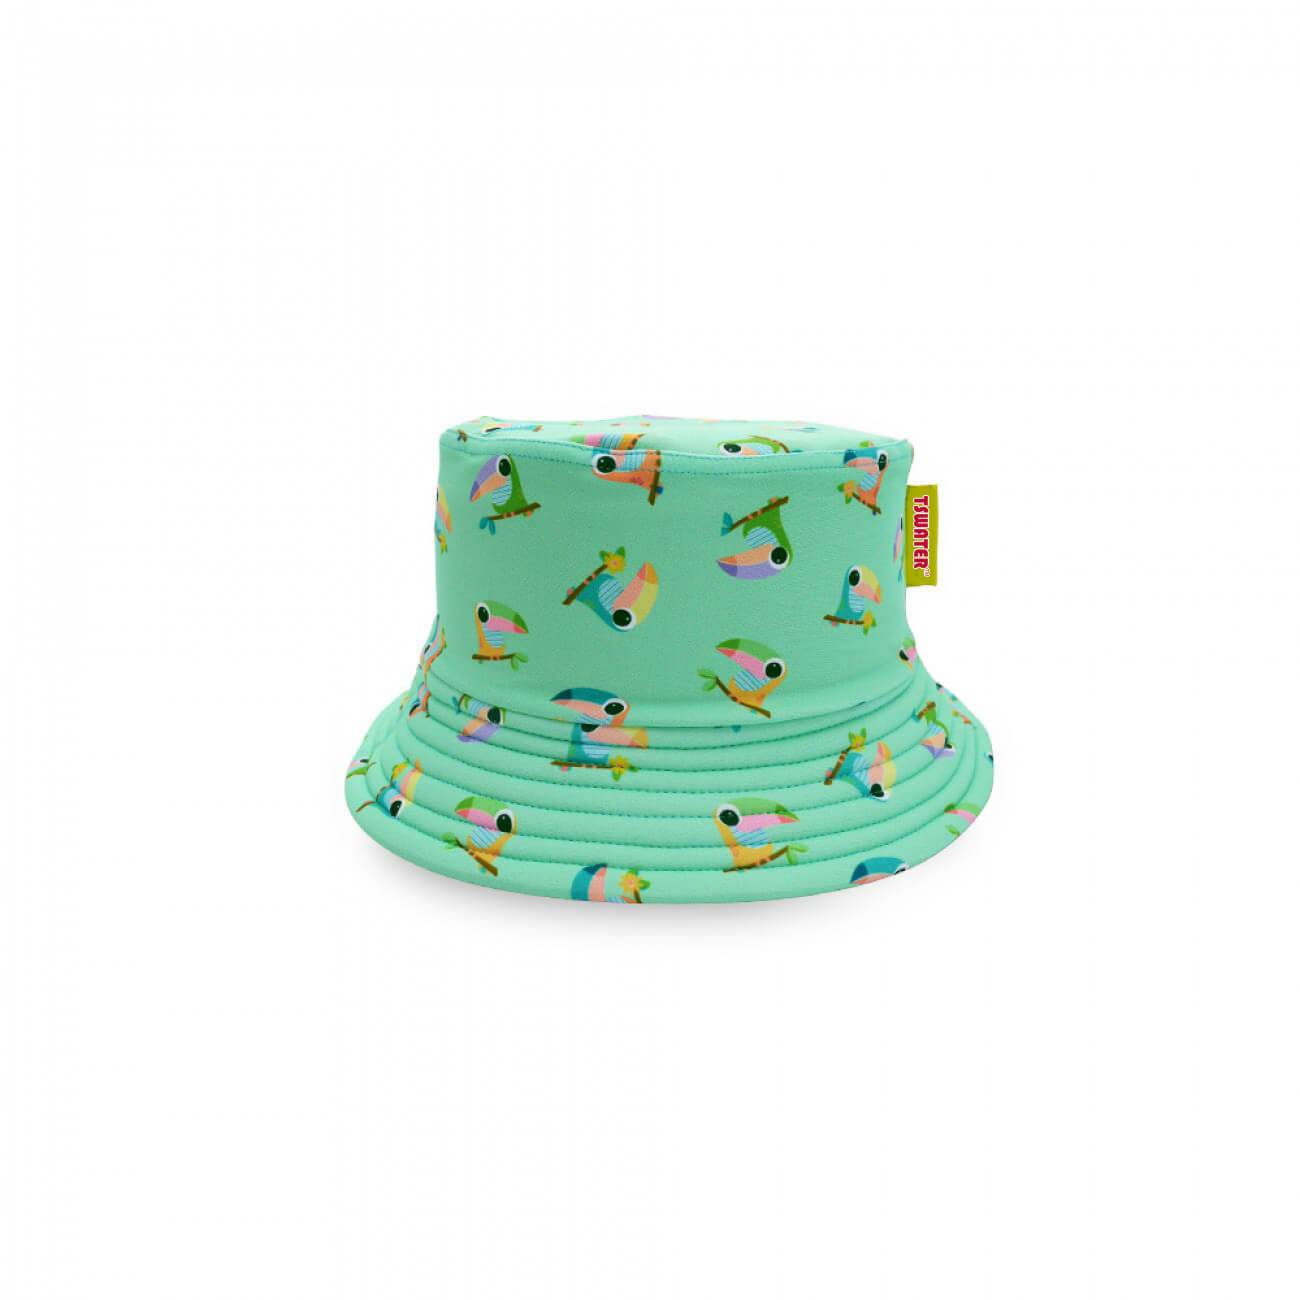 Stringable fabric soft children's sun hat Featured Image